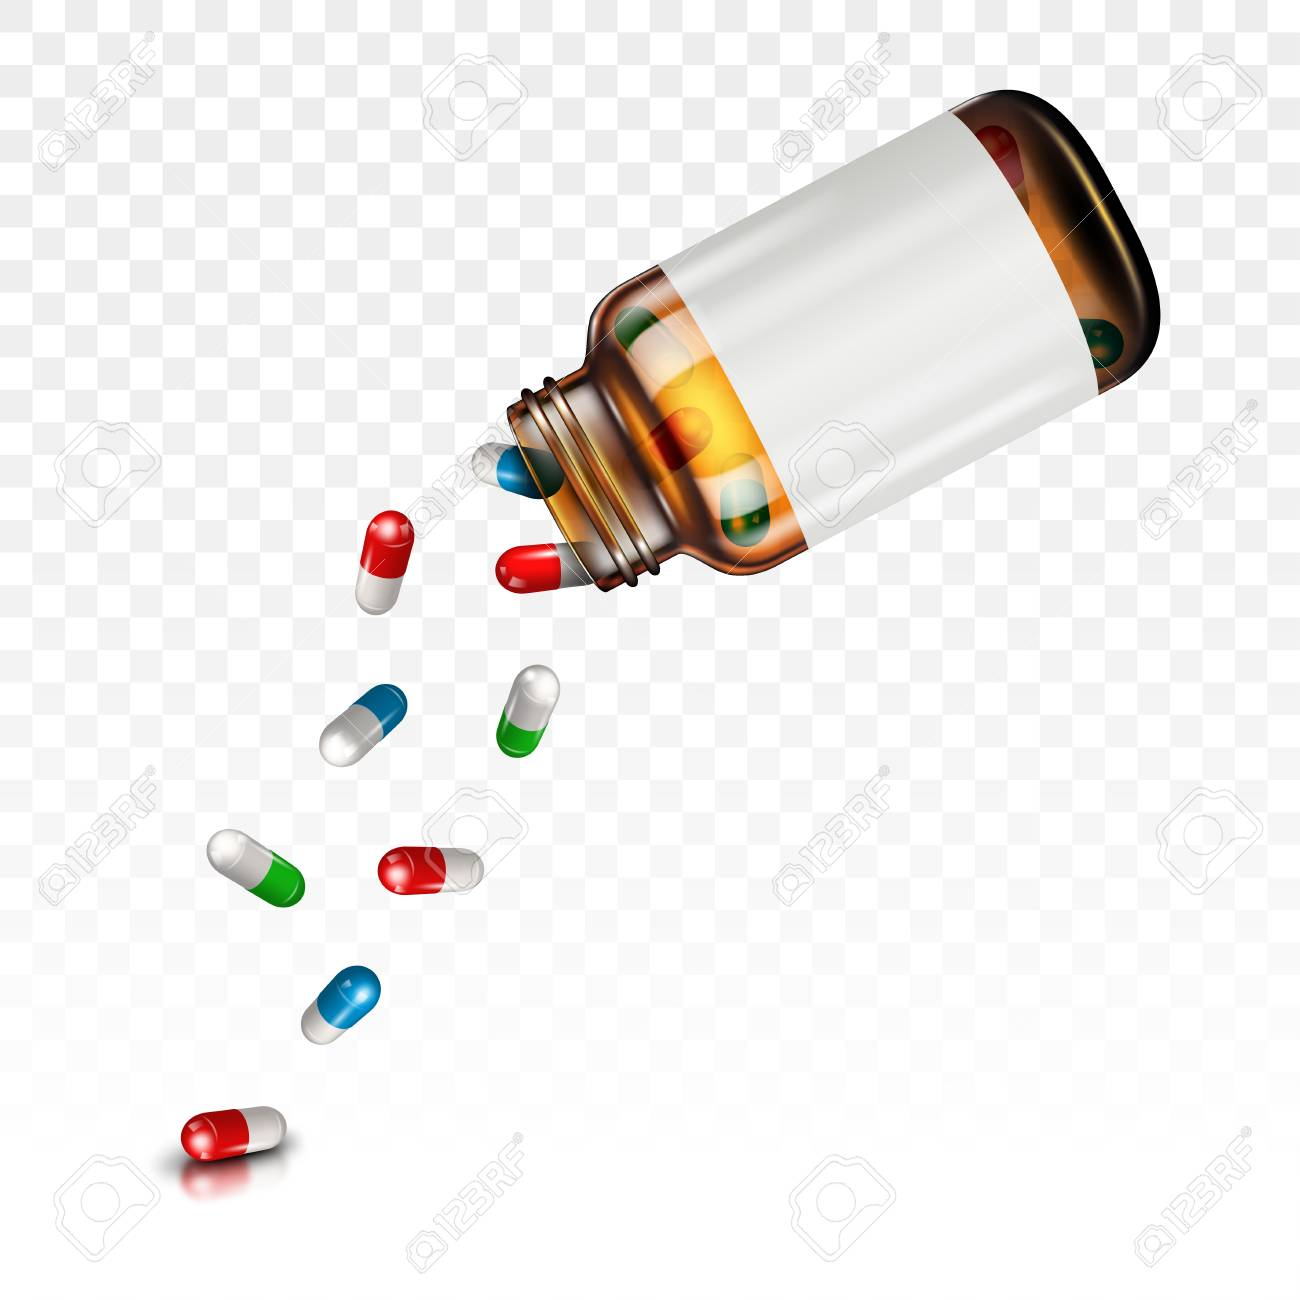 Pills falling from a jar on a transparent background - 94792964